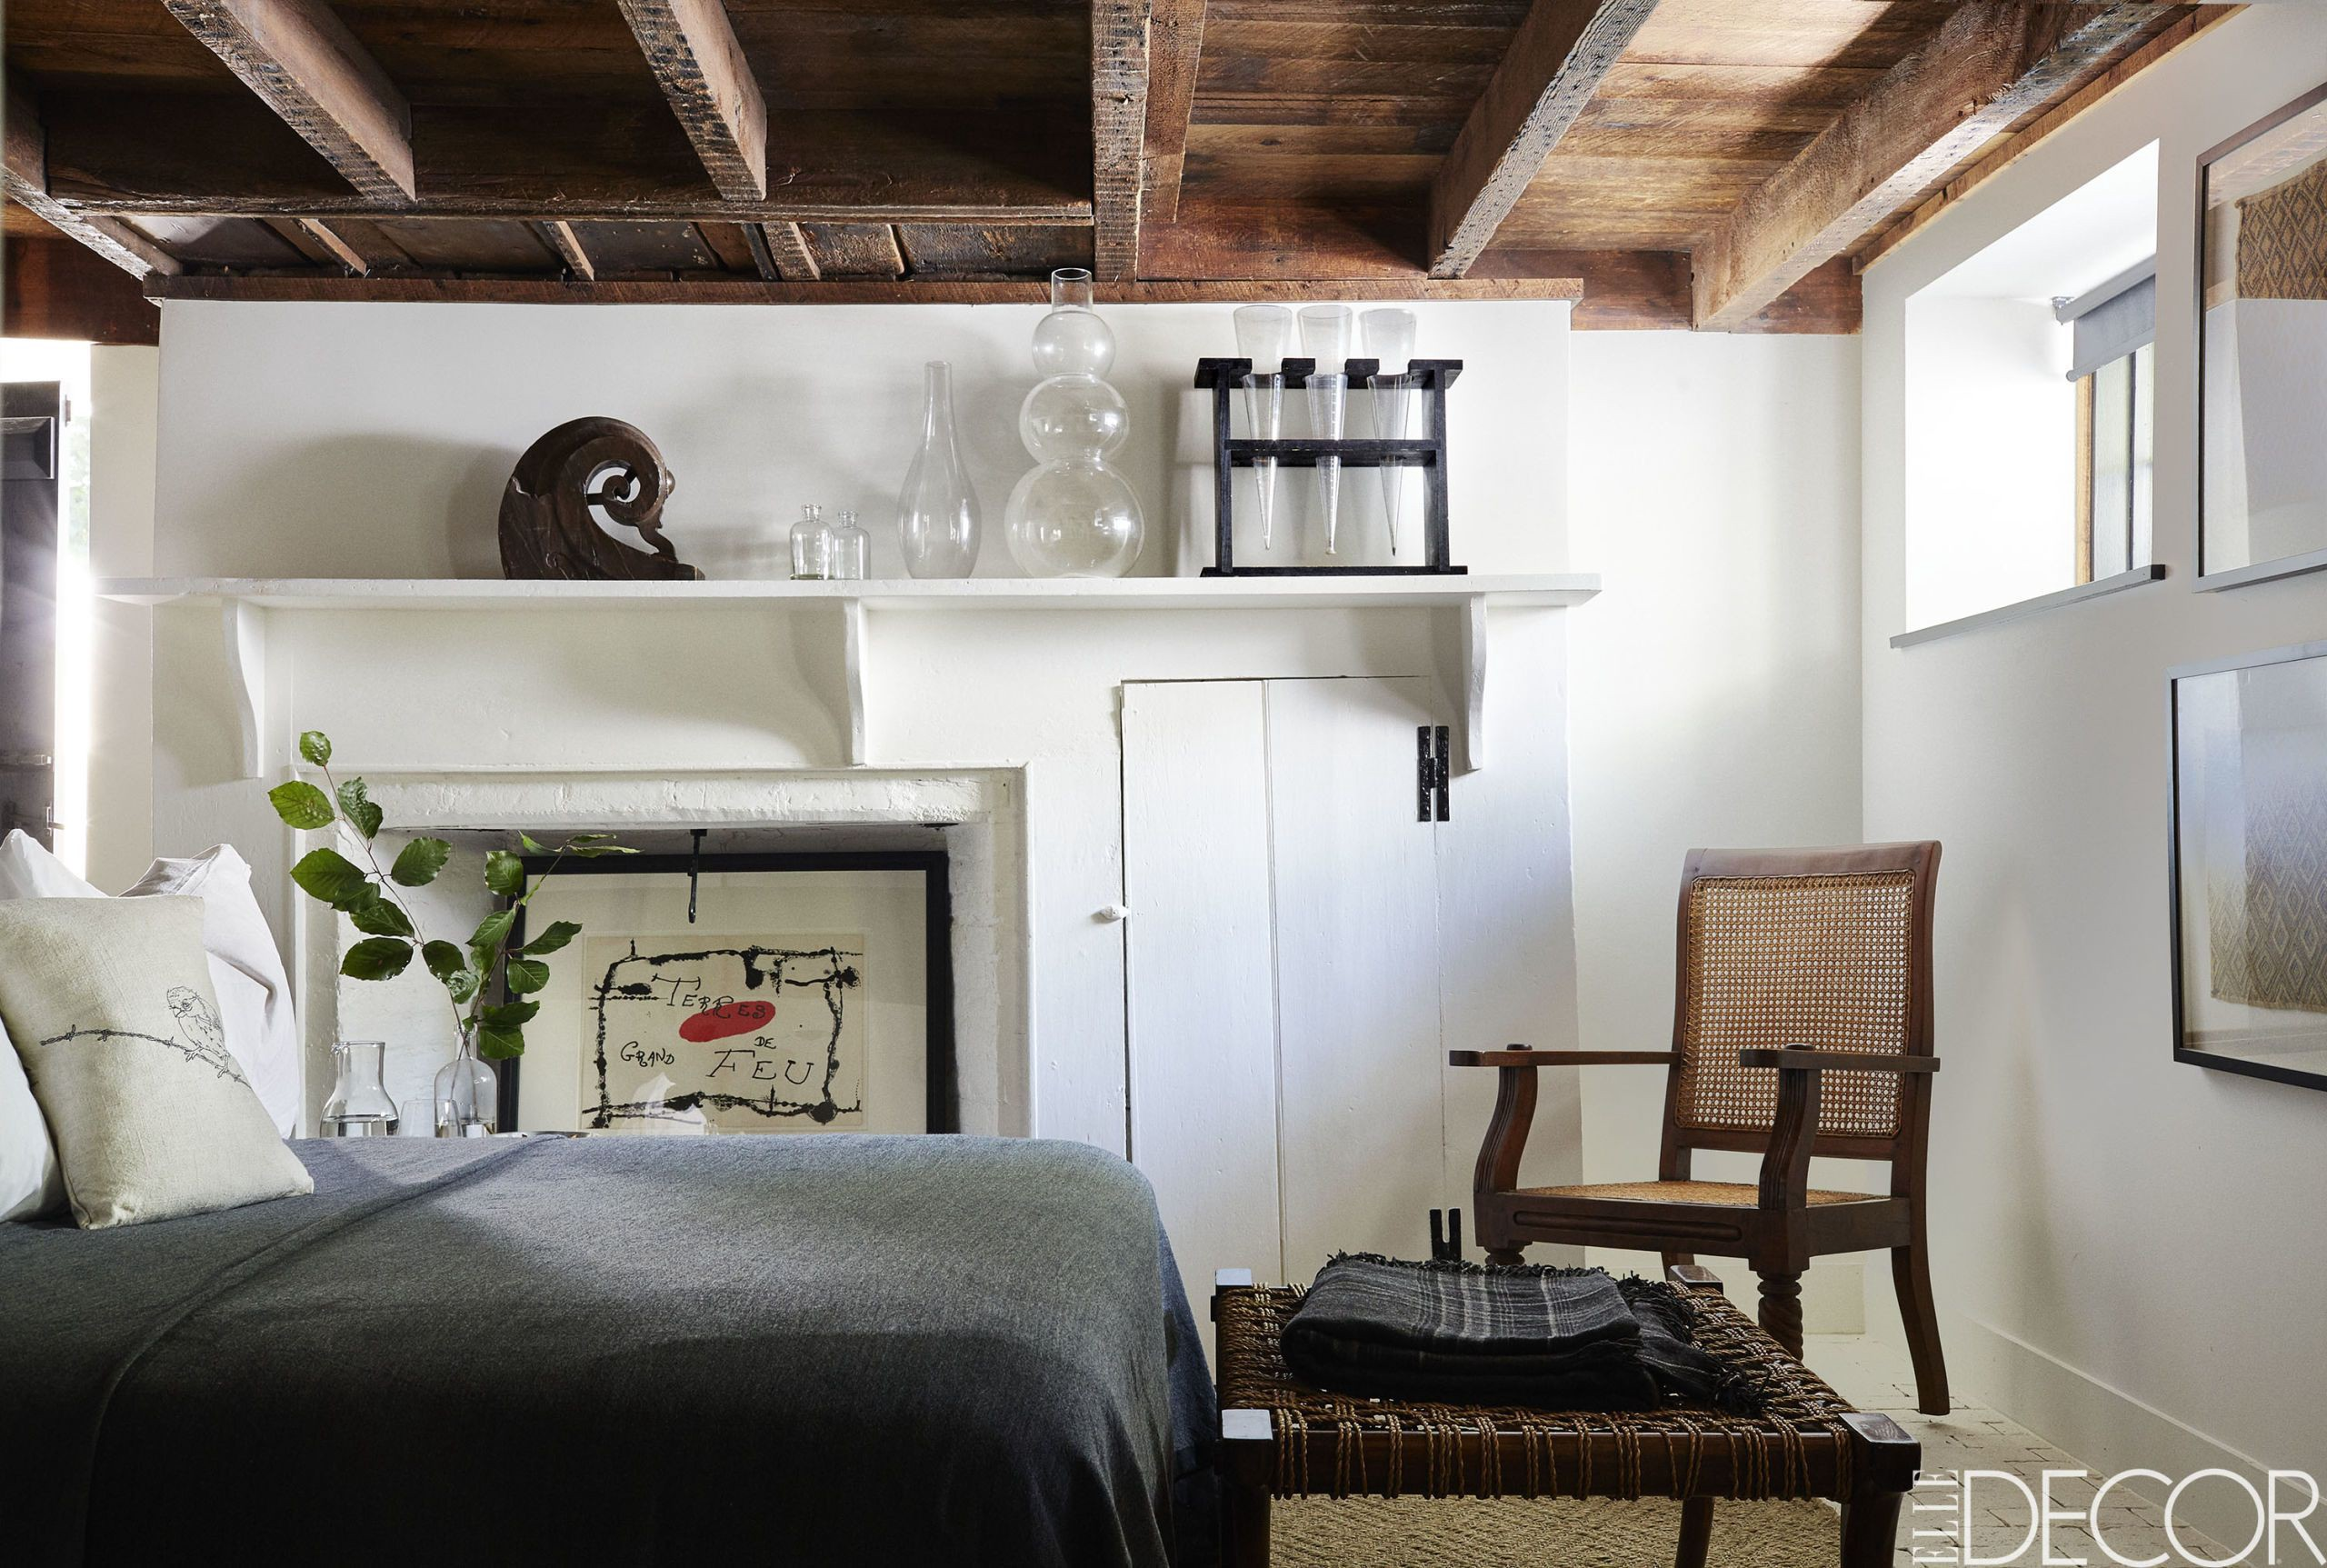 Cheap Bedroom Ideas For Small Rooms - putra sulung - Medium